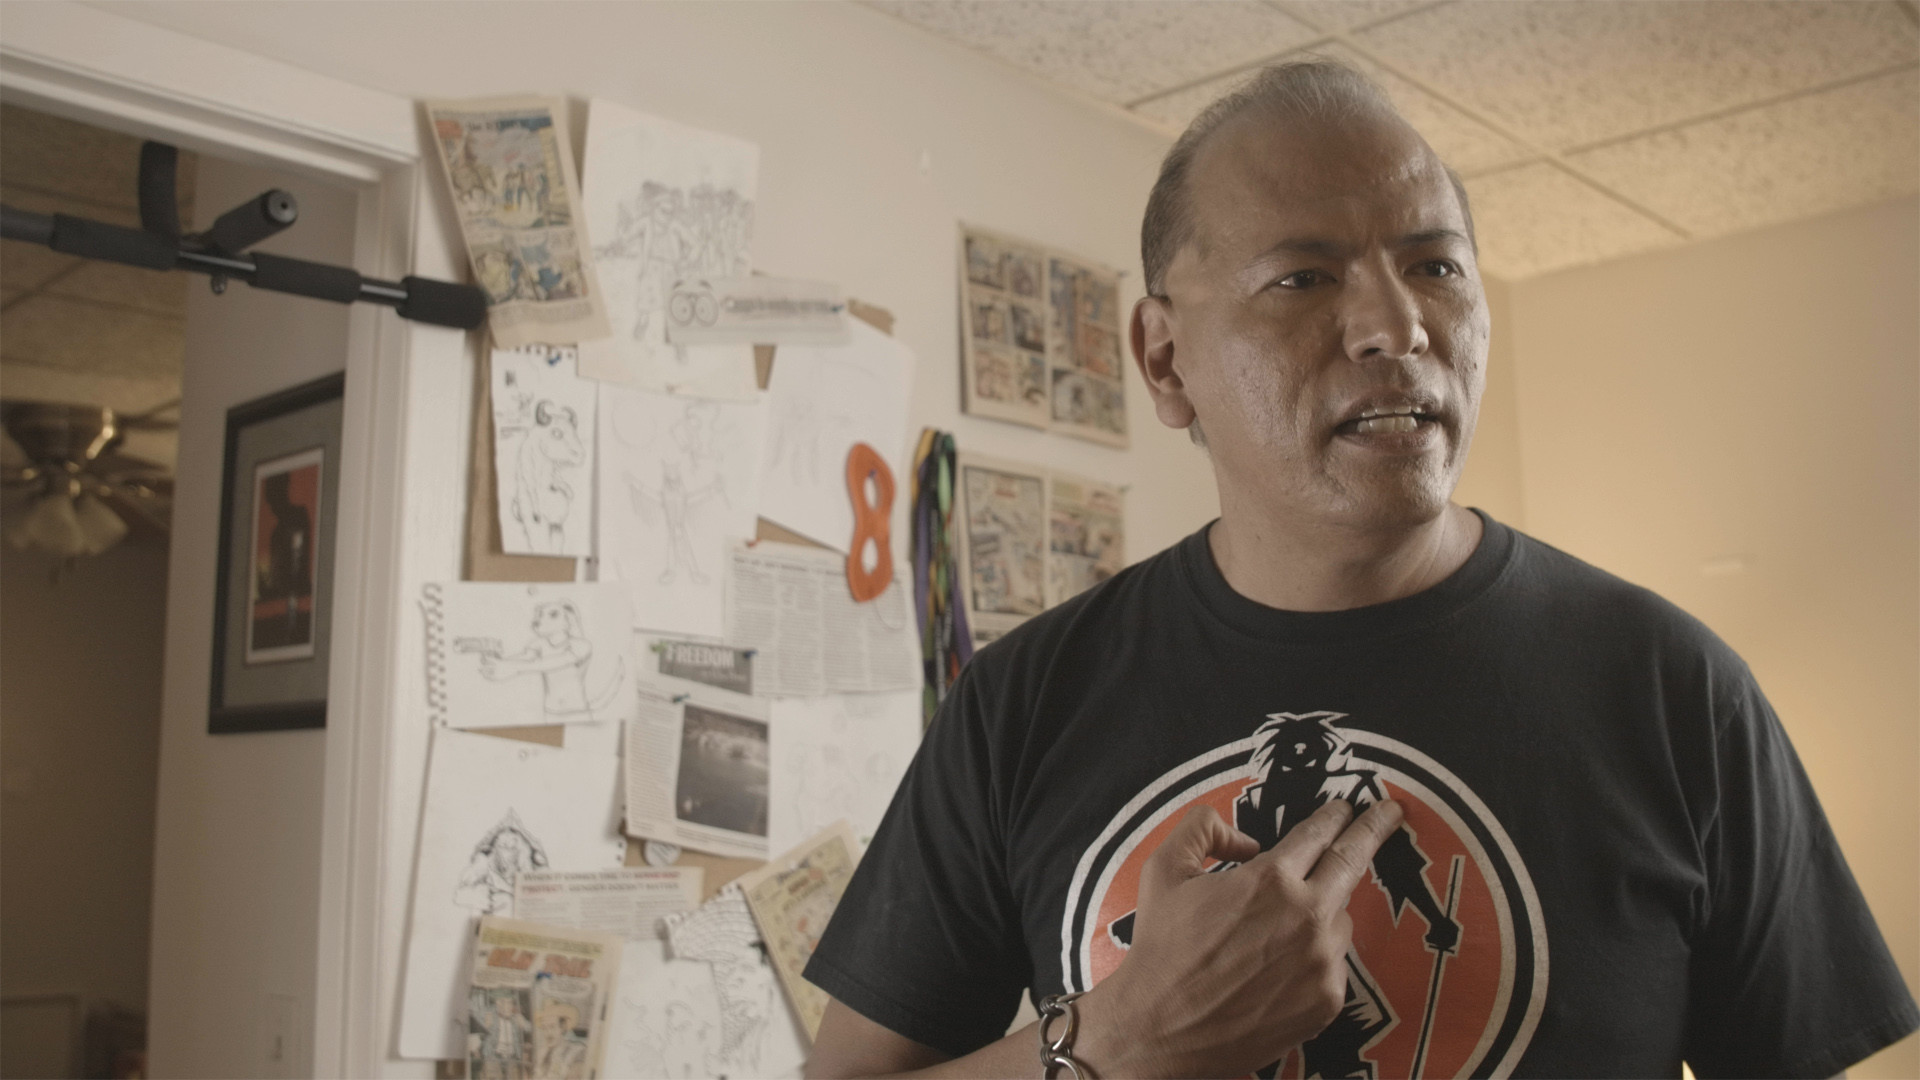 The Incredible Brown NDN - Director: Rodrick Pocowatchit, 9 m 49 sLive Short, United StatesAn ordinary Joe decides to become the world's first Native Amerivsn superhero.